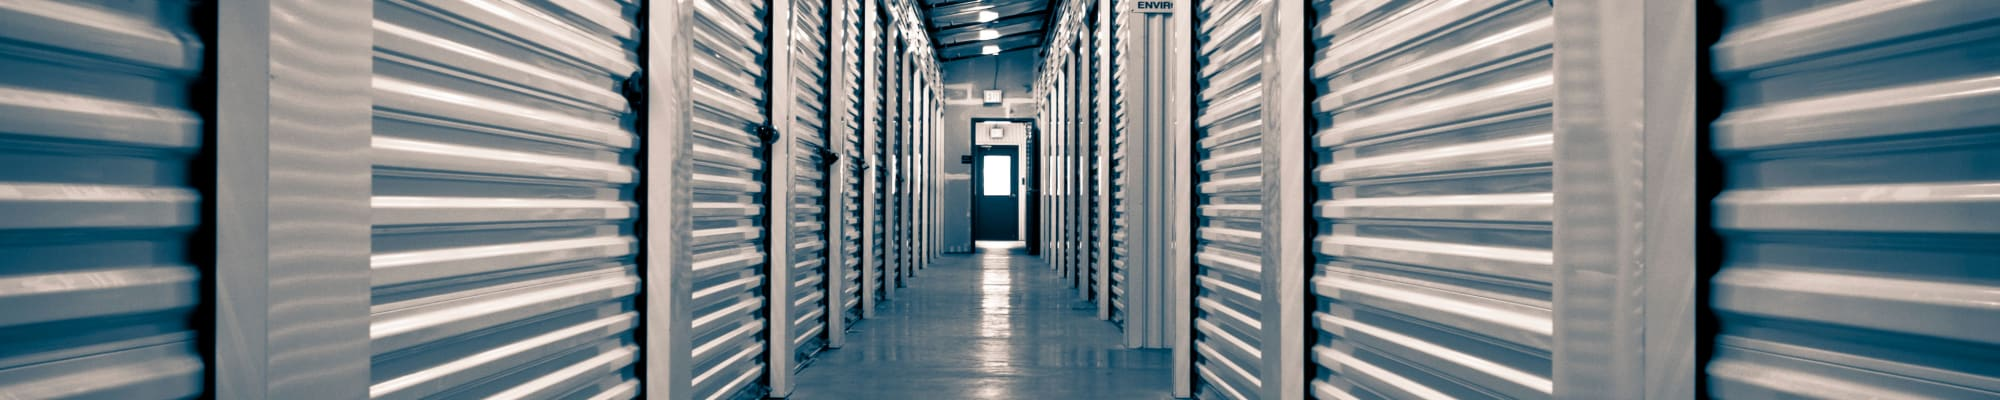 Store It All Self Storage - Baltimore storage units for rent in Baltimore, Maryland